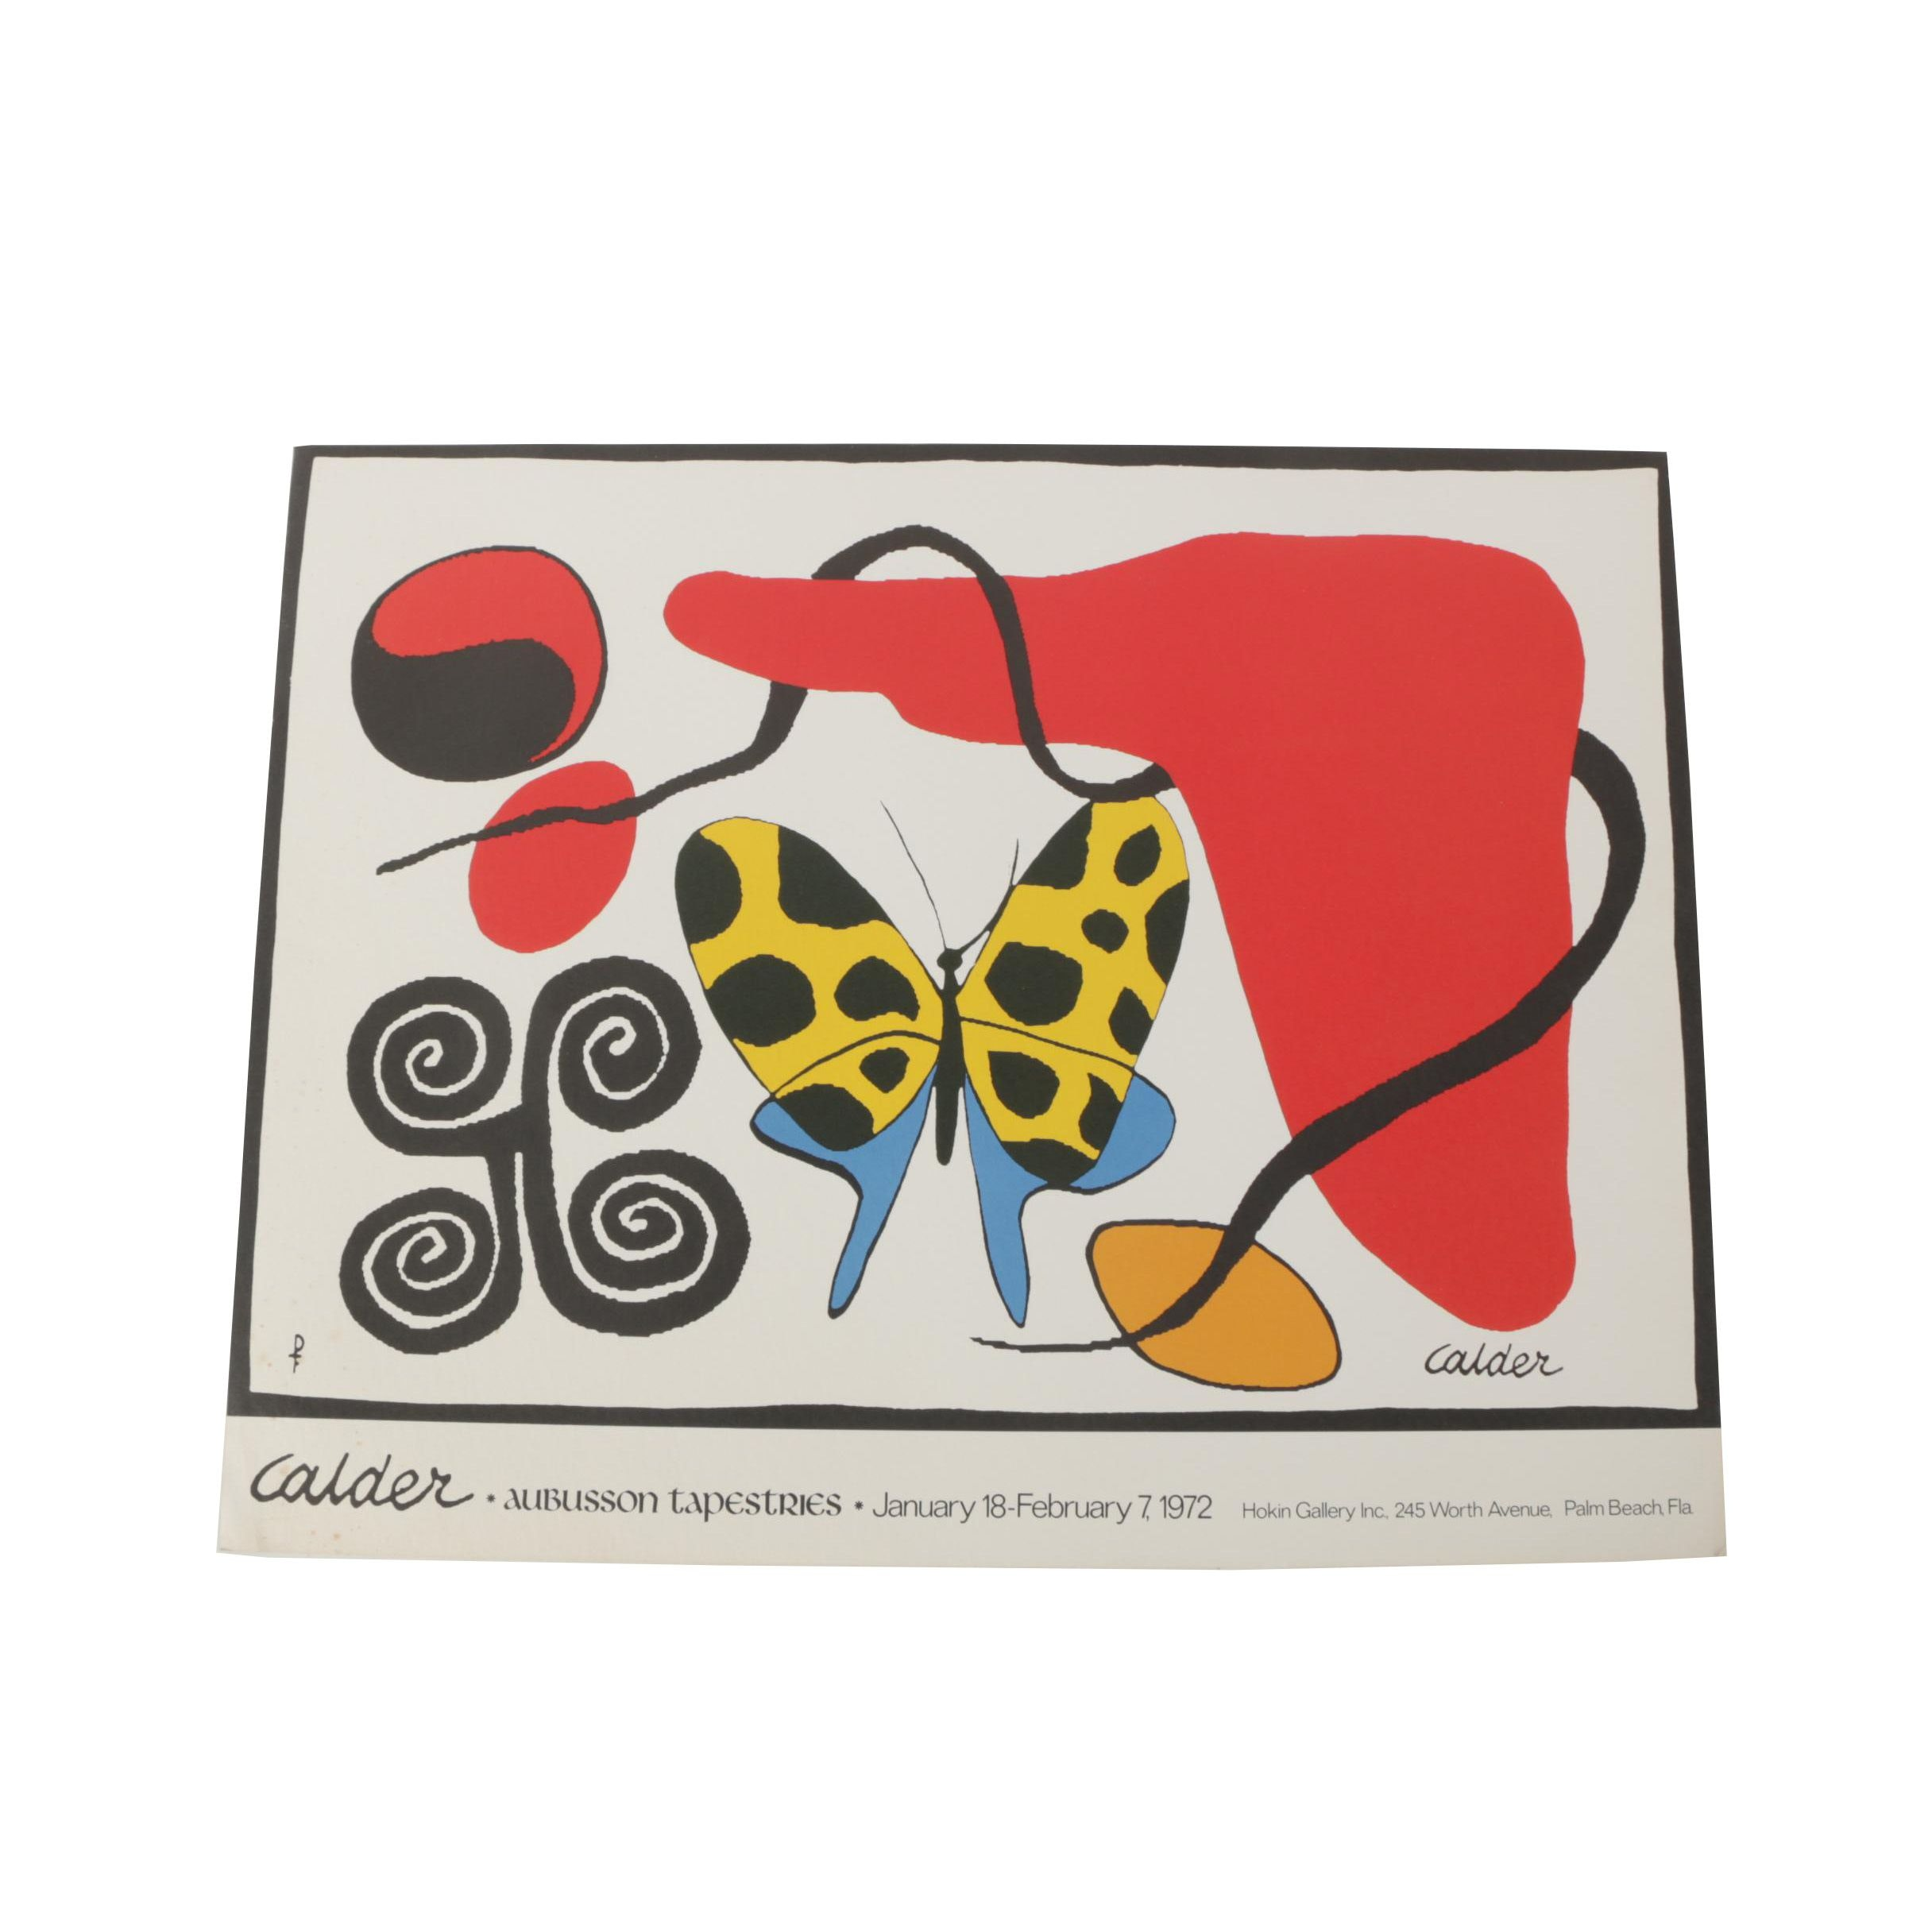 1972 Calder Aubusson Tapestries Exhibition Poster